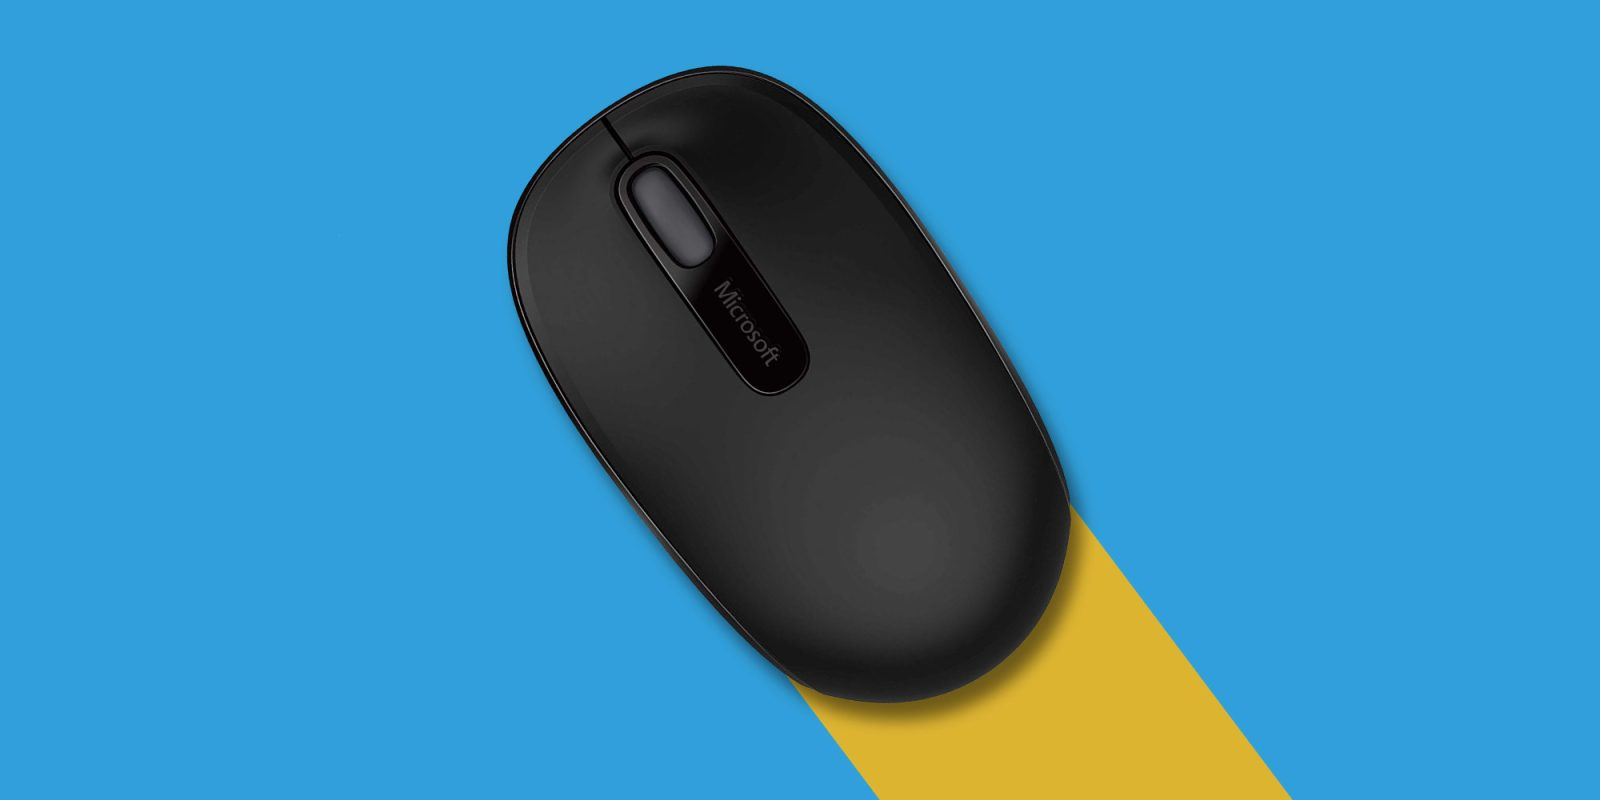 Microsoft Wireless Mobile Mouse 1850: il più economico